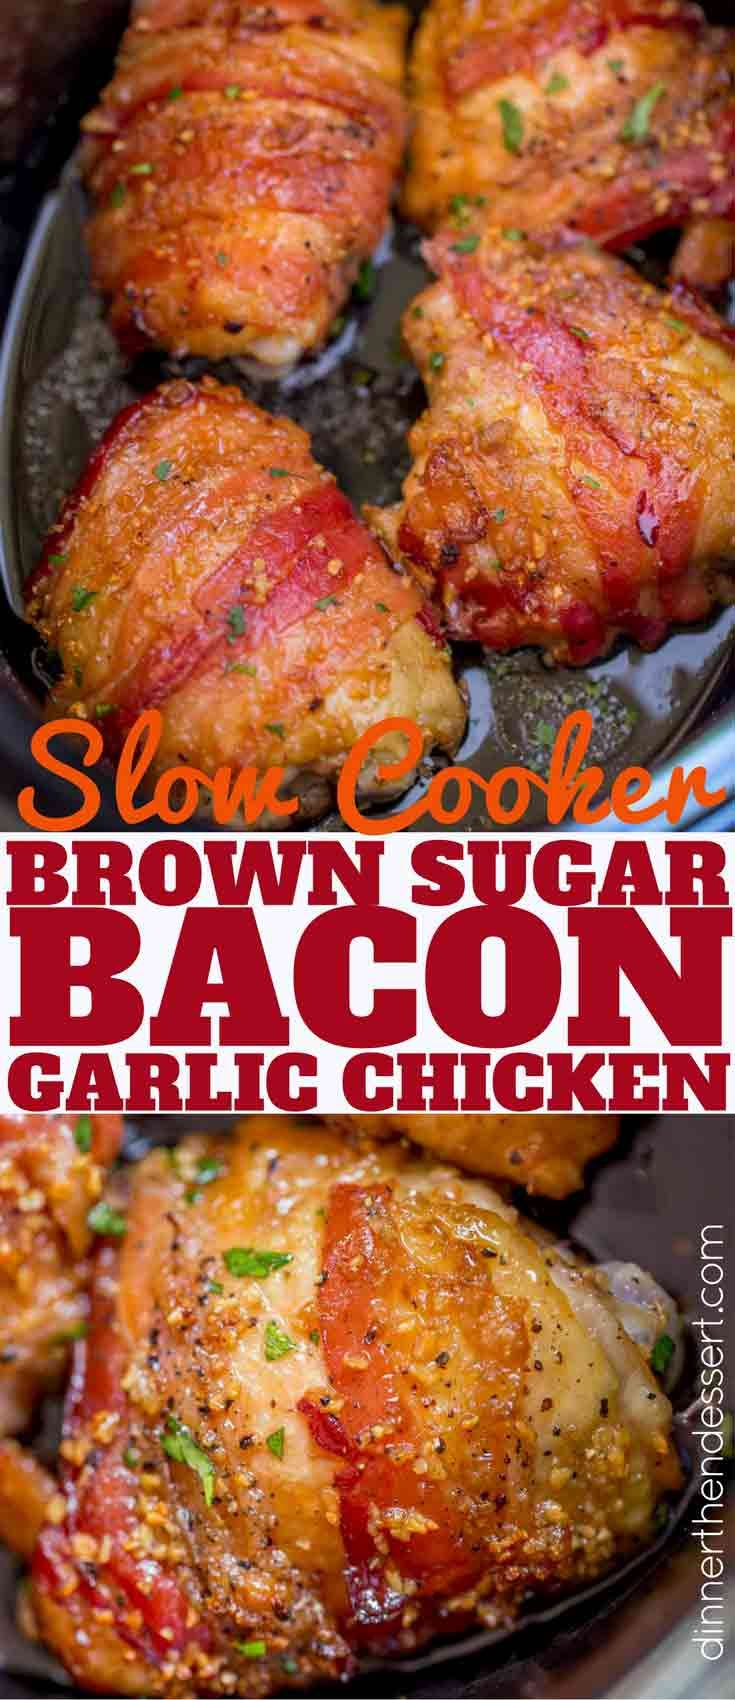 Slow Cooker Bacon Brown Sugar Garlic Chicken is made with just five ingredients in your slow cooker. Sticky, garlicky, sweet fall apart bacon and chicken goodness.